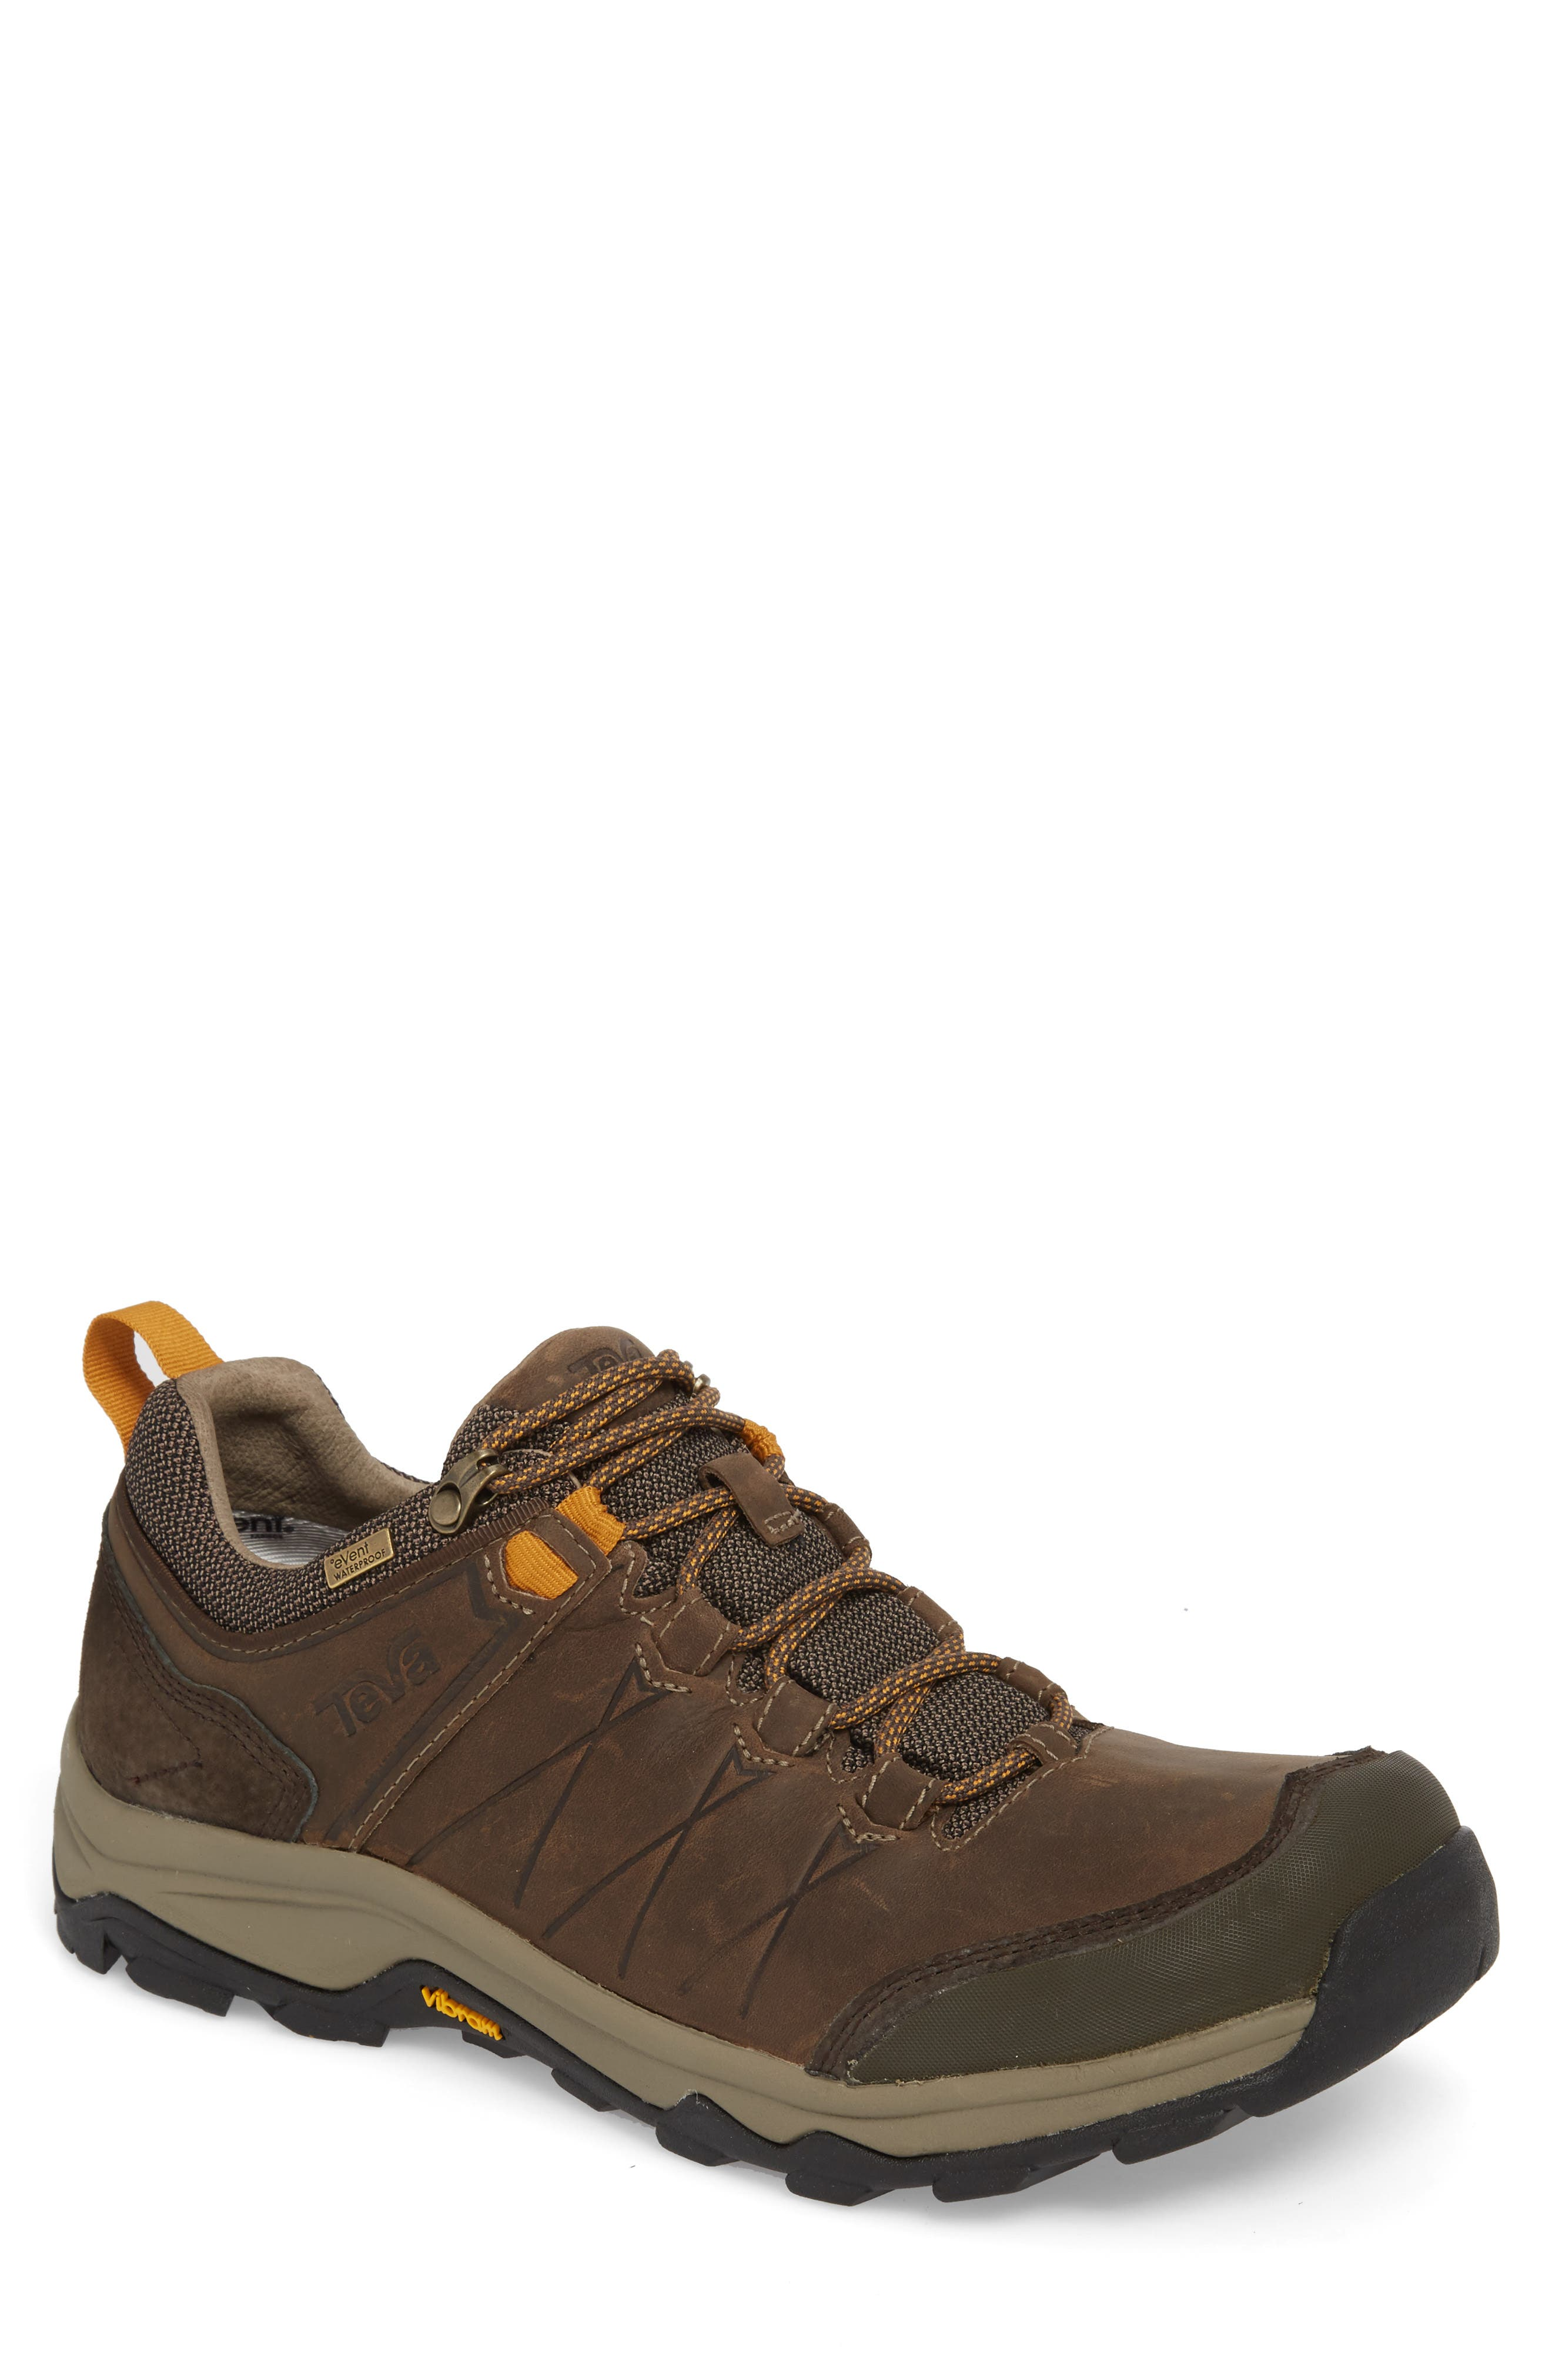 Alternate Image 1 Selected - Teva Arrowood Riva Waterproof Sneaker (Men)